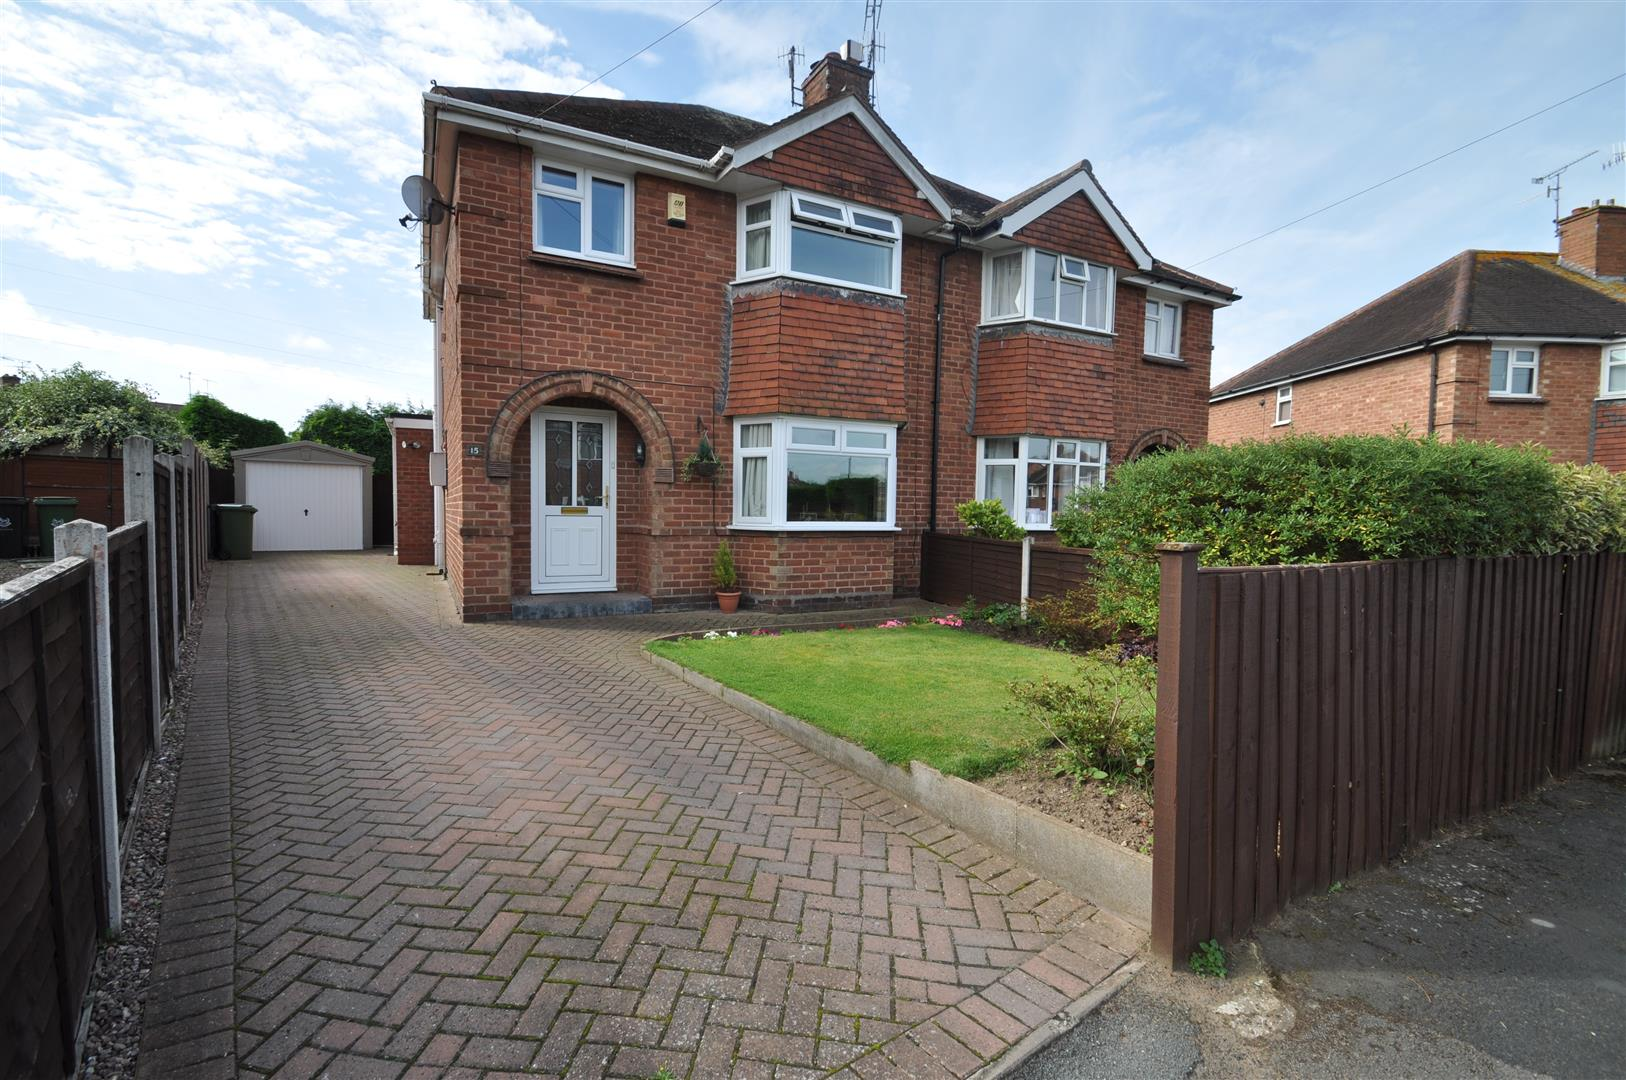 3 Bedrooms Semi Detached House for sale in Blenheim Road, Worcester